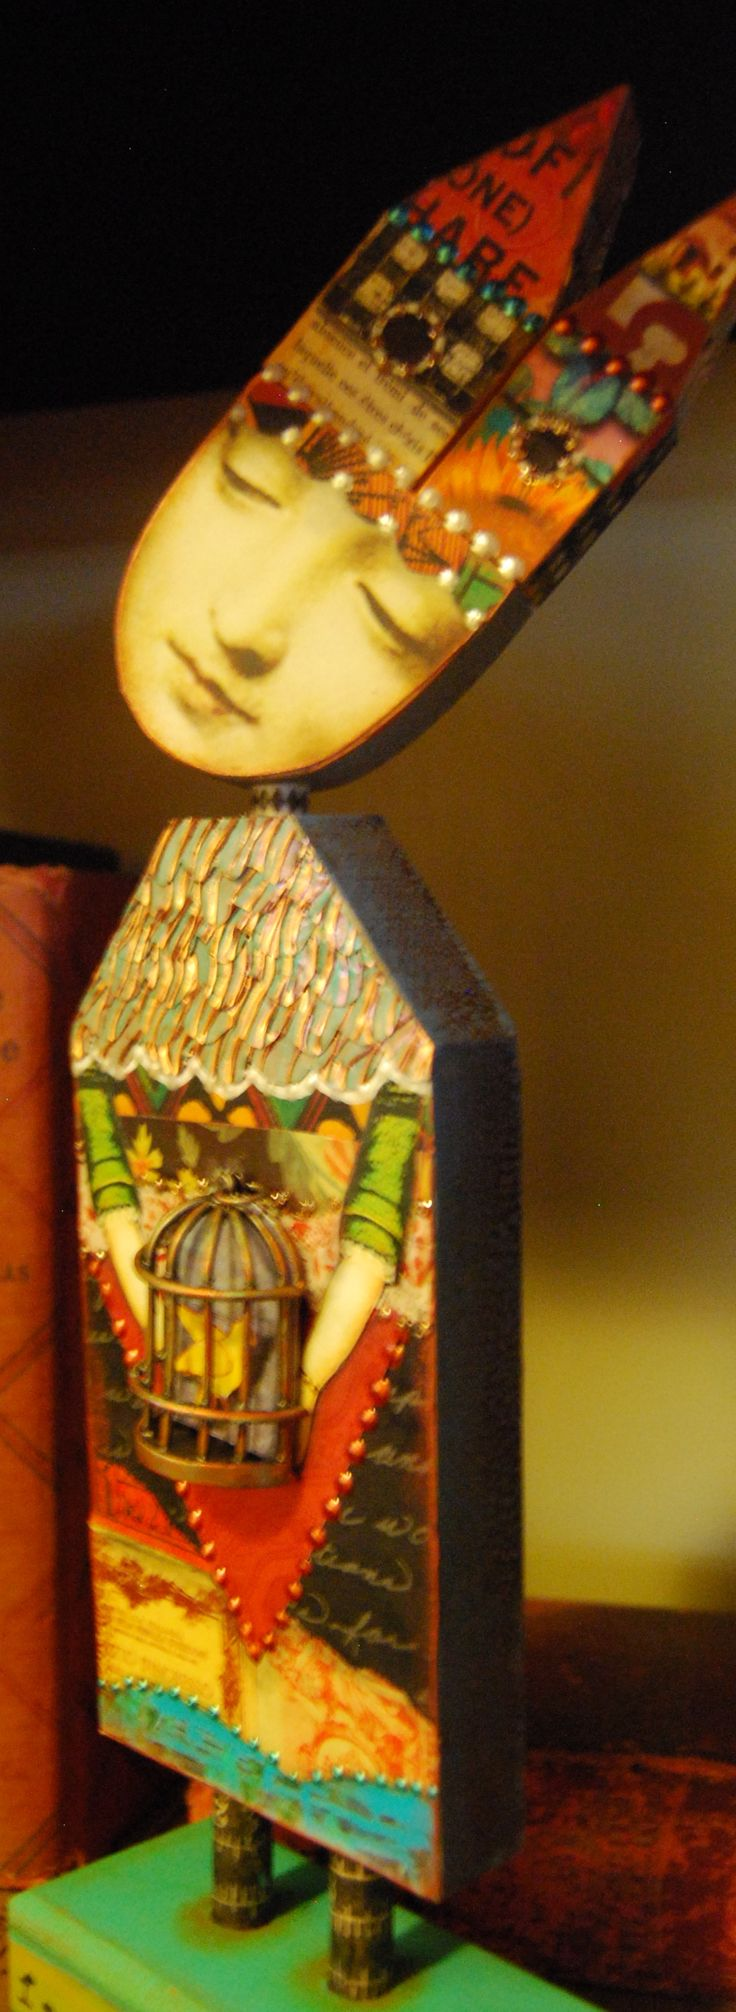 Imaginarium - Anthology of an Art Doll...an online class with Mary Jane Chadbourne on Artful Gathering in summer of 2014!  Copyright 2014 / All Rights Reserved